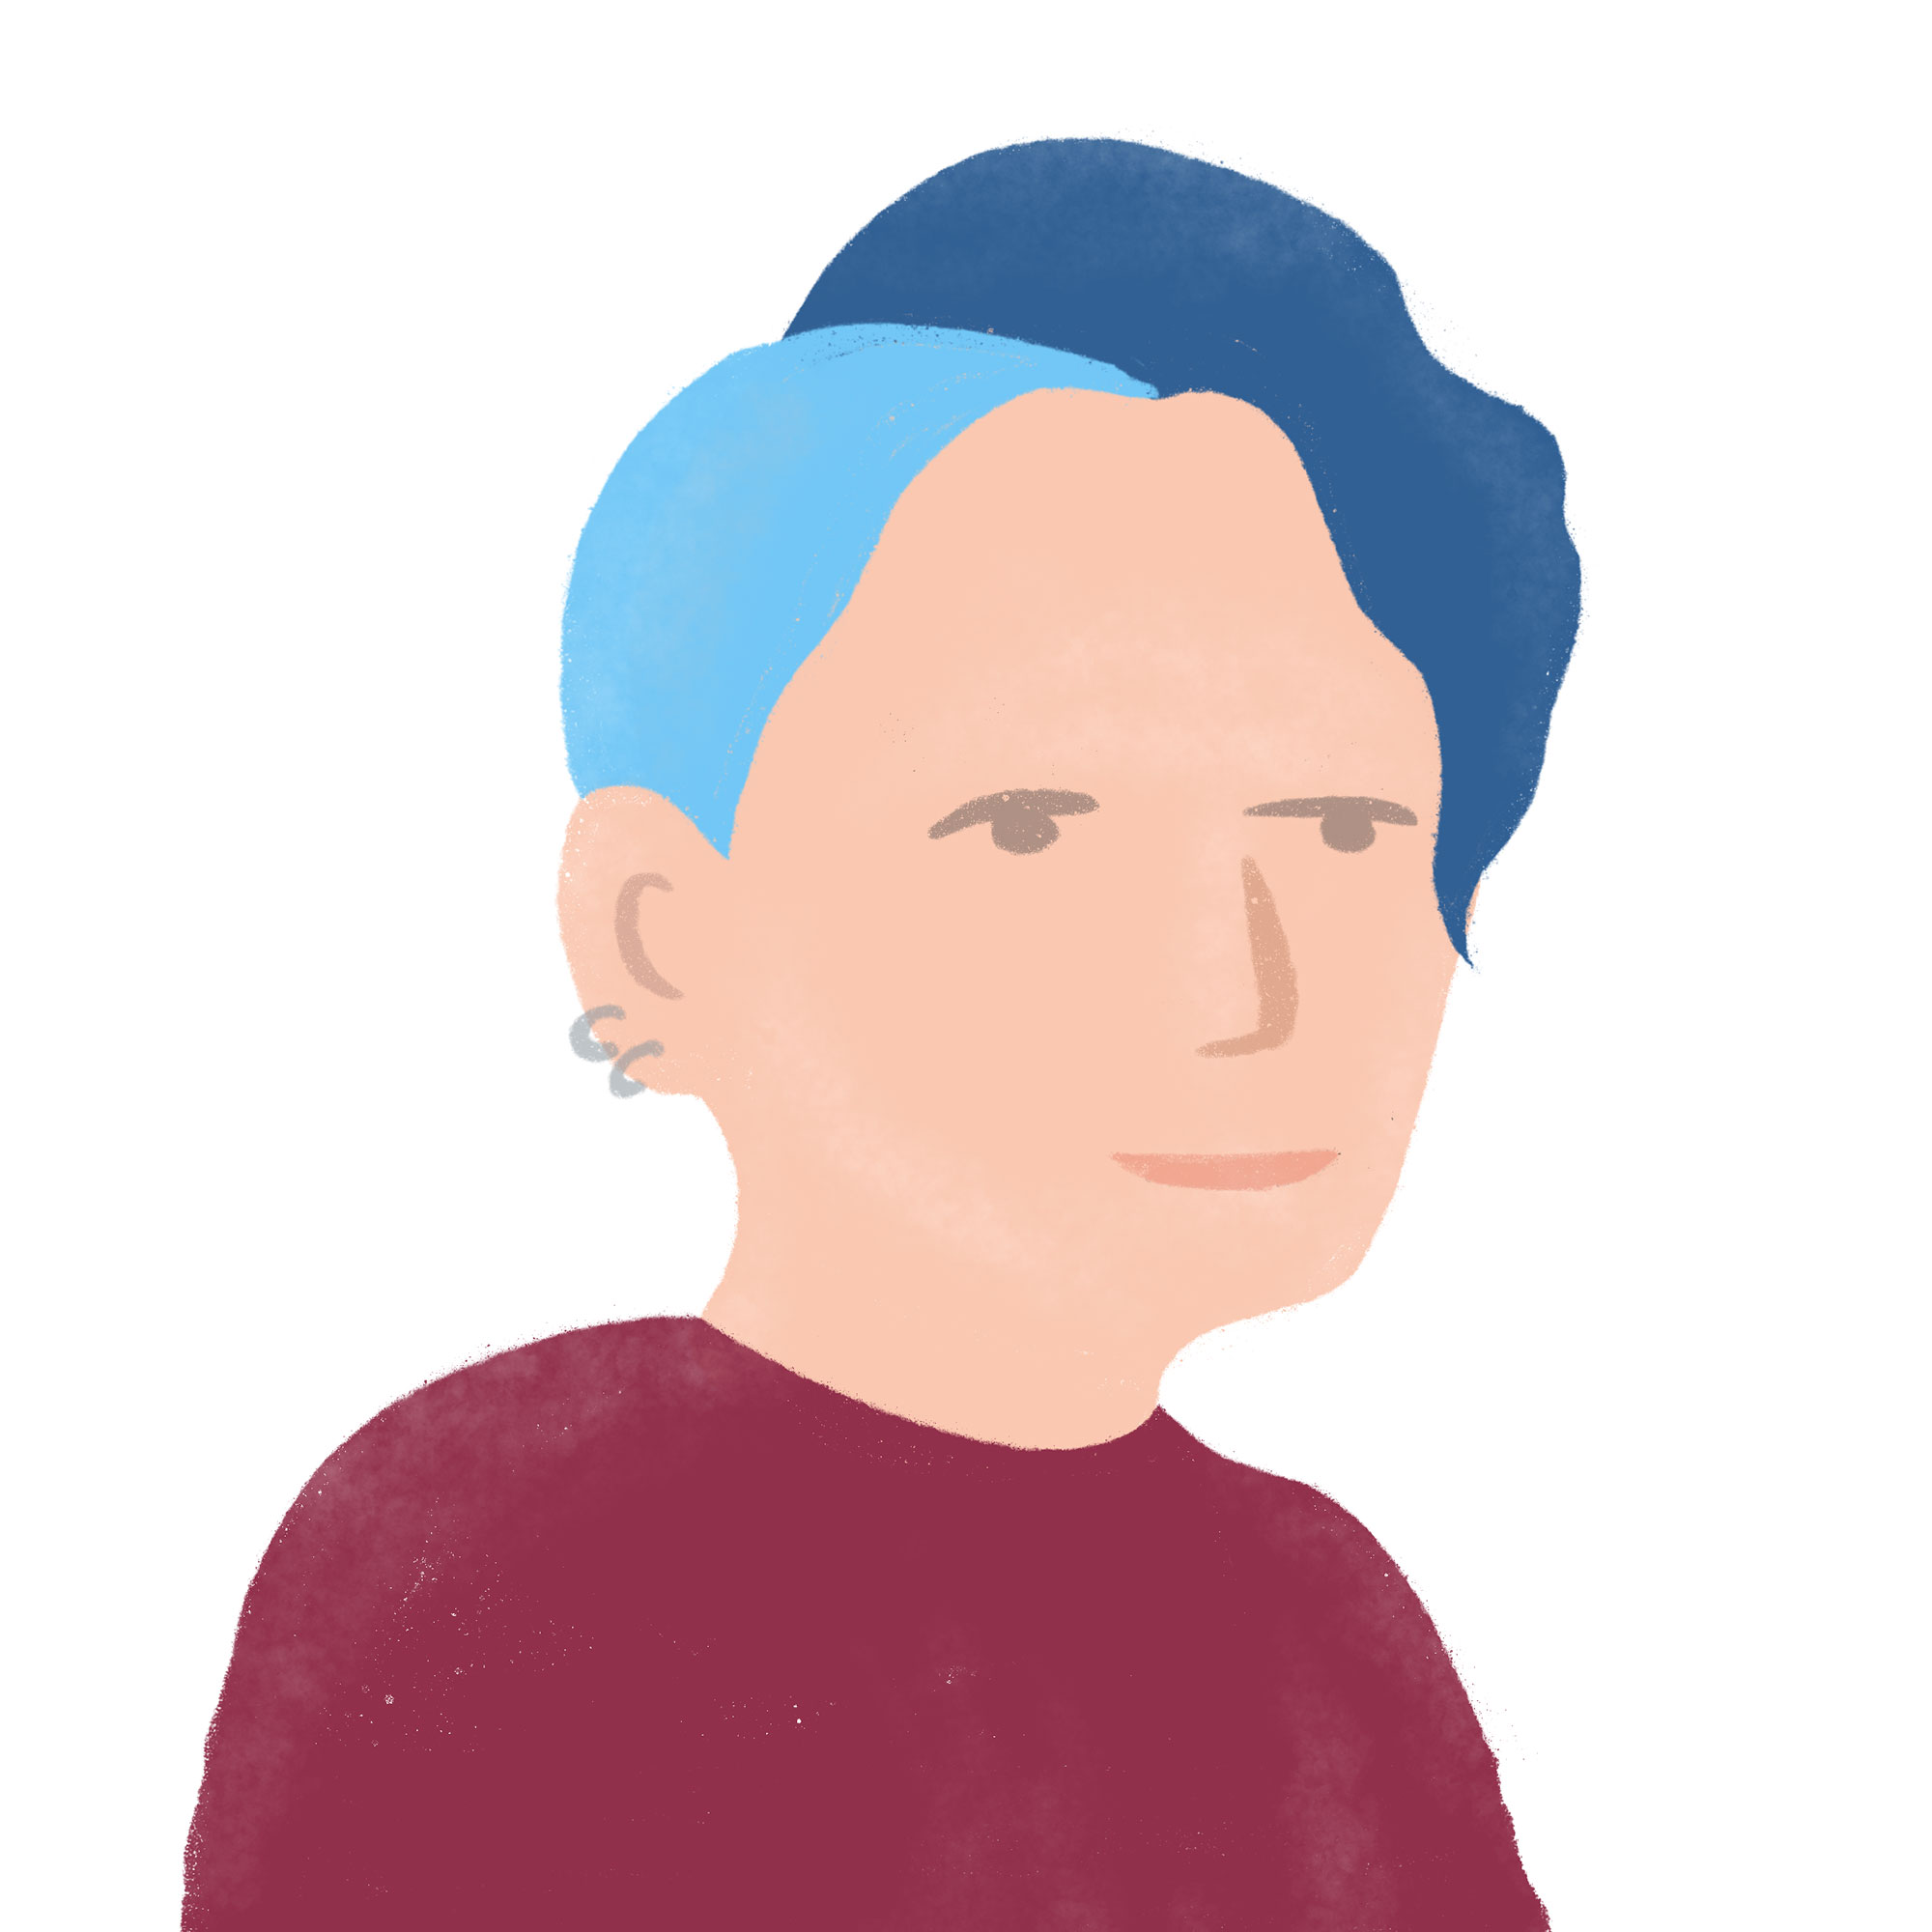 Illustration of white person with ear piercings and blue hair, wearing a red shirt